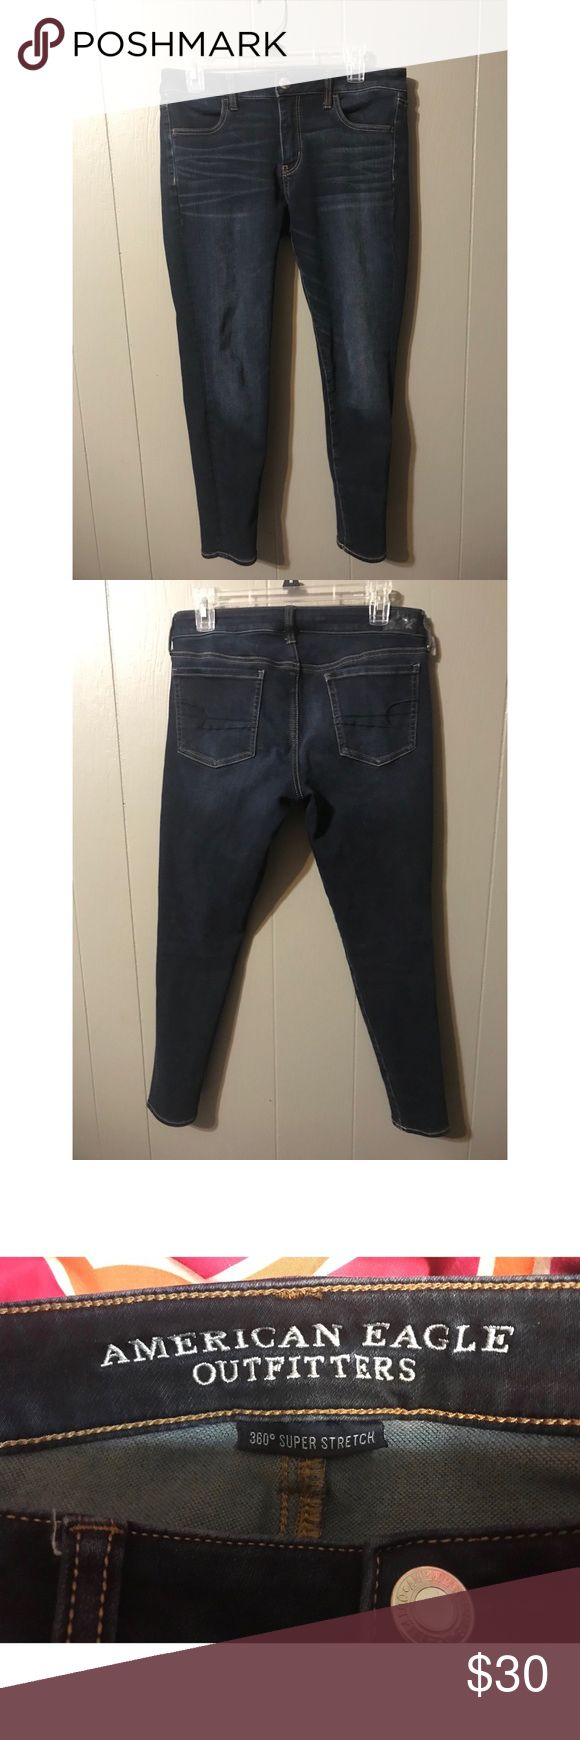 AEO 360 Super Stretch Jegging Gently worn, dark wash, American Eagle Outfitters 360 Super Stretch Jegging, Size 10 Short. Super comfy just too big on me now. American Eagle Outfitters Jeans Skinny